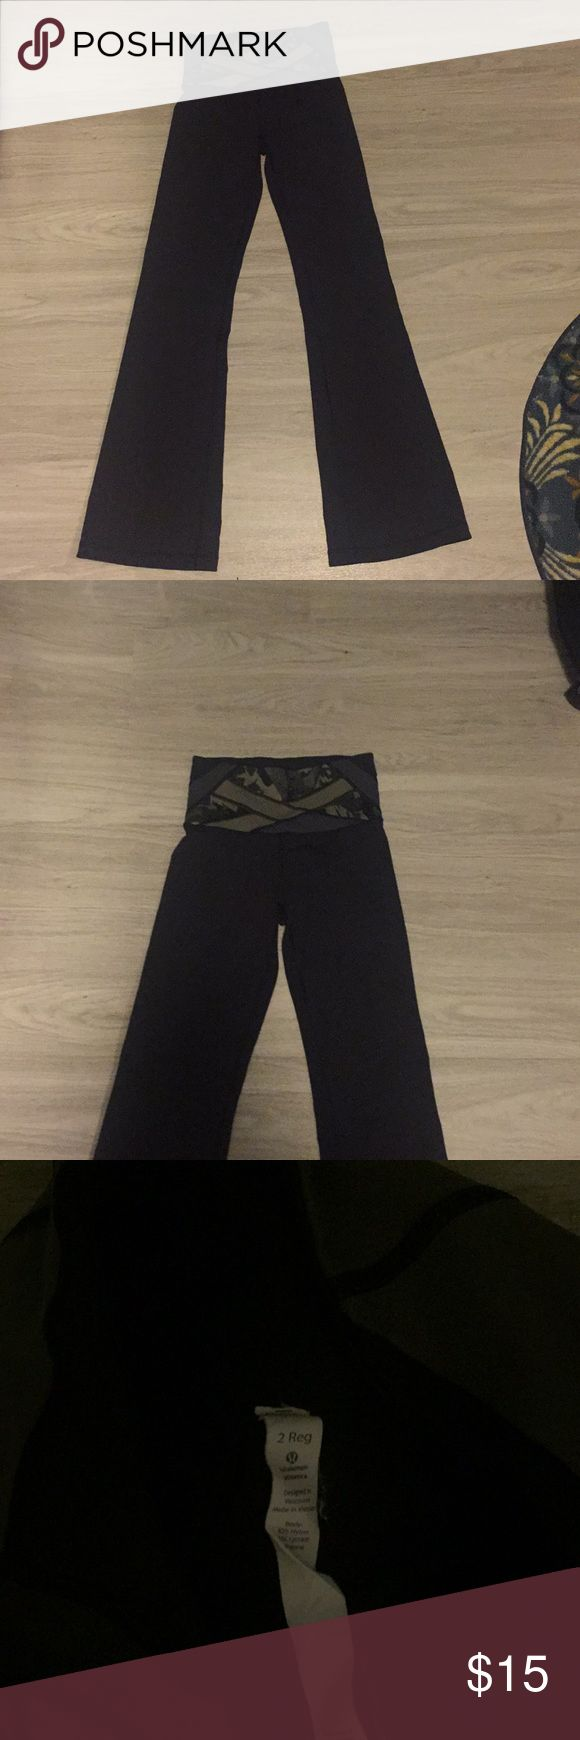 Lululemon high waist camo yoga pants size 2 Good condition small area of piling (shown in the pic) measurements (approx) inseam: 34 inches length: 42 inches lululemon athletica Pants Track Pants & Joggers